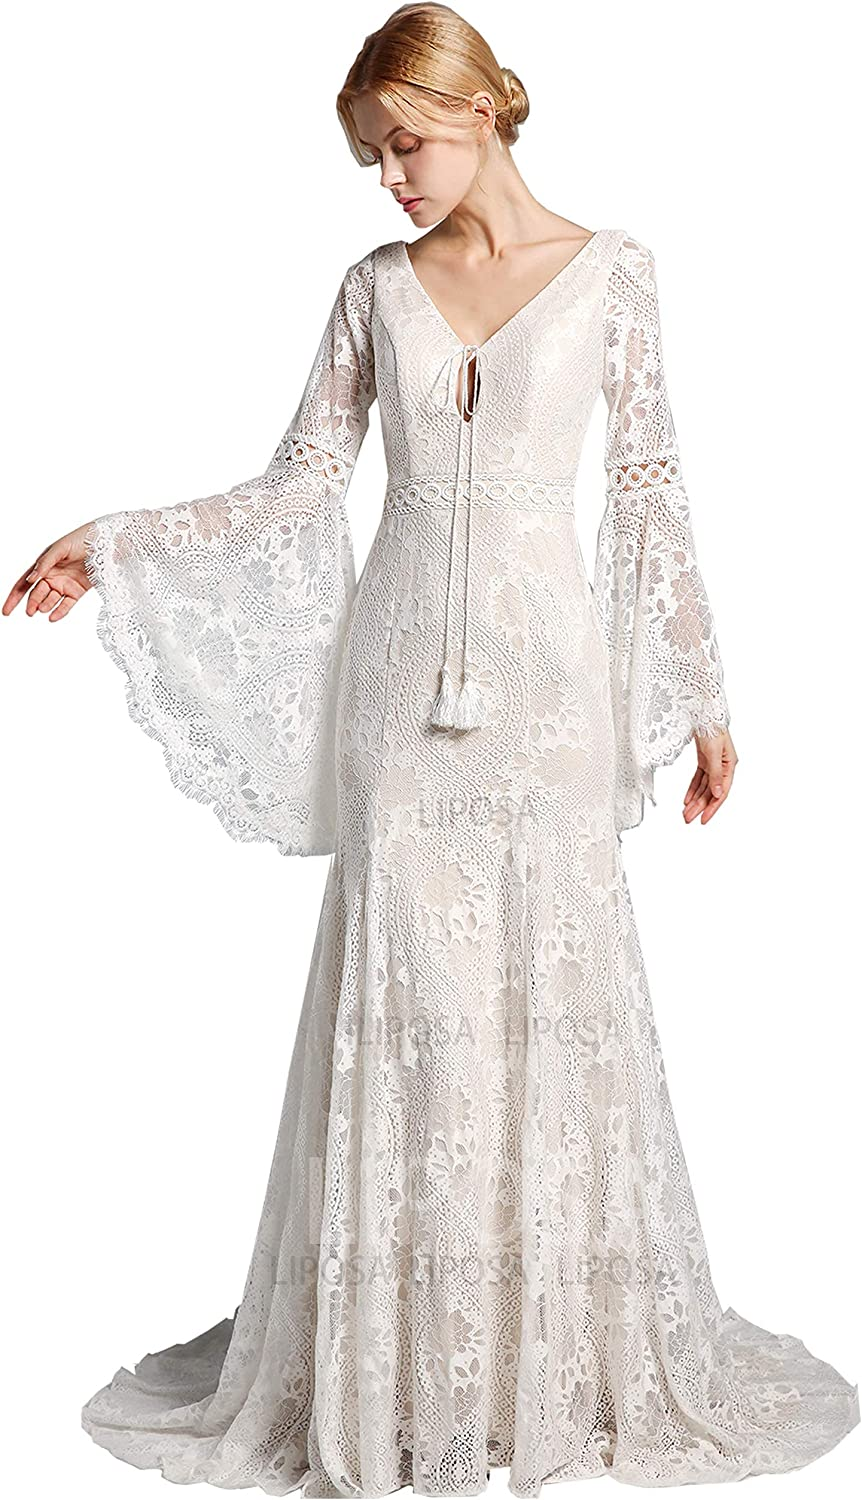 LIPOSA Boho Lace Wedding Dresses for Brides Long Bell Sleeves V Neck Mermaid Bridal Gowns with Sweep Train